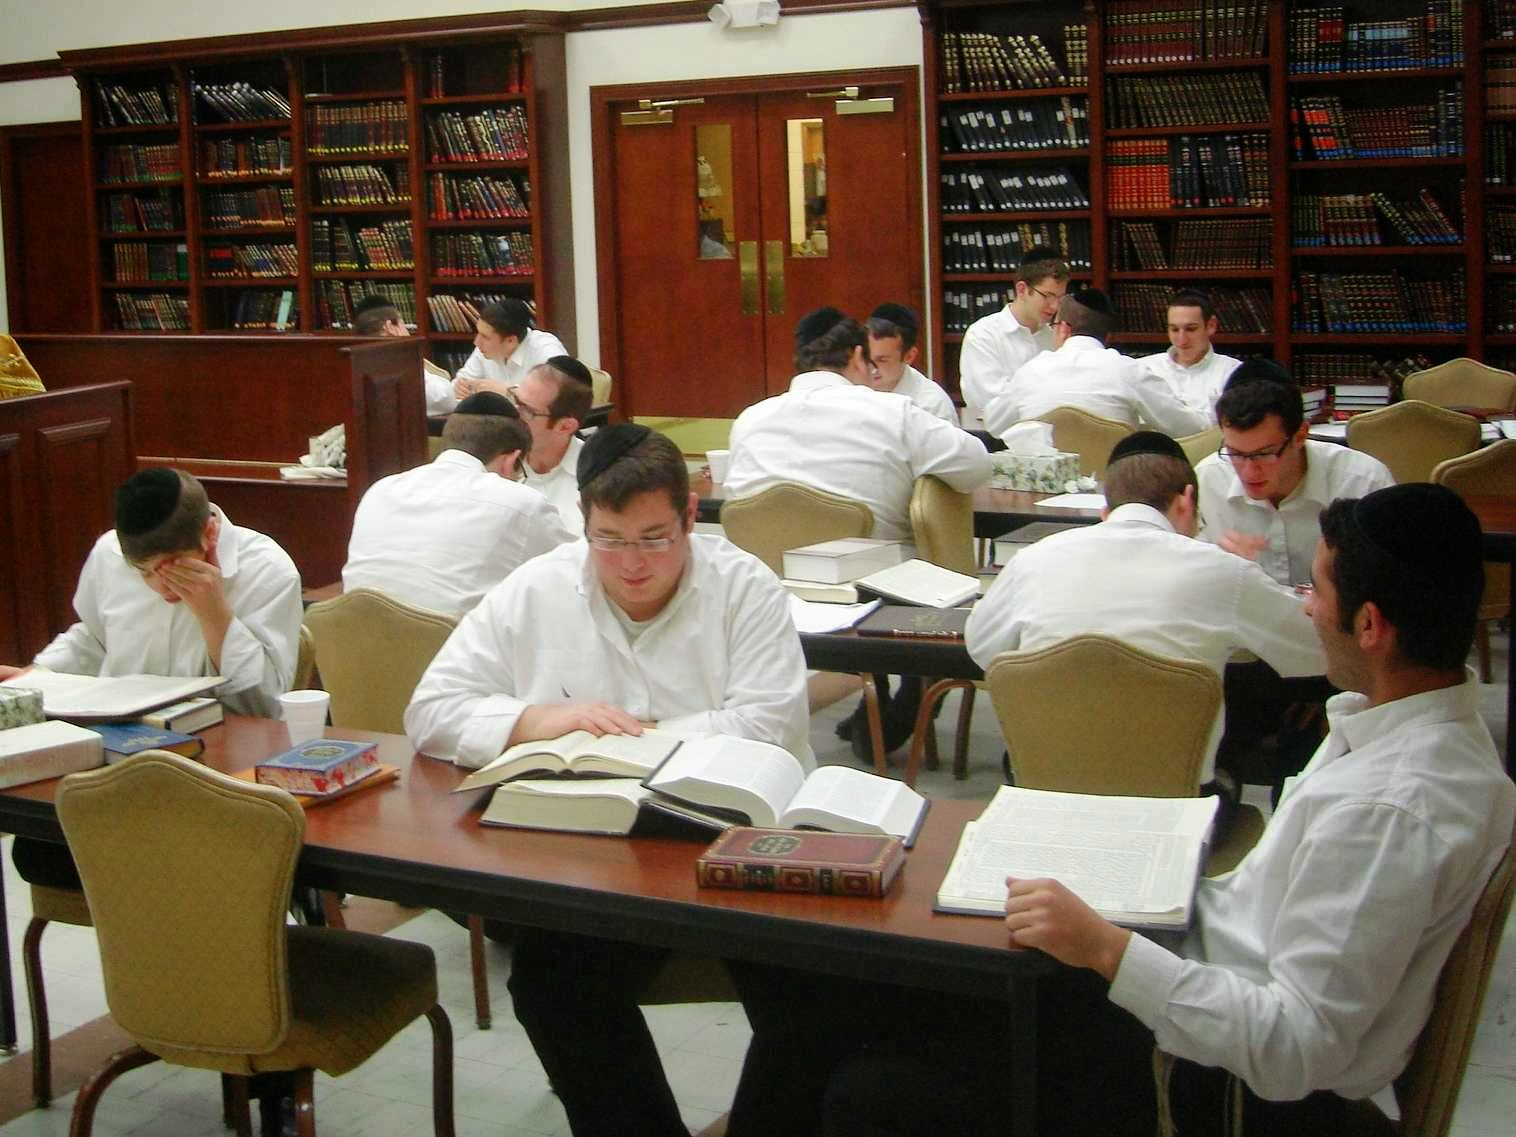 Photo of Yeshiva Gedola of Carteret in Carteret City, New Jersey, United States - 1 Picture of Point of interest, Establishment, School, Place of worship, Library, Synagogue